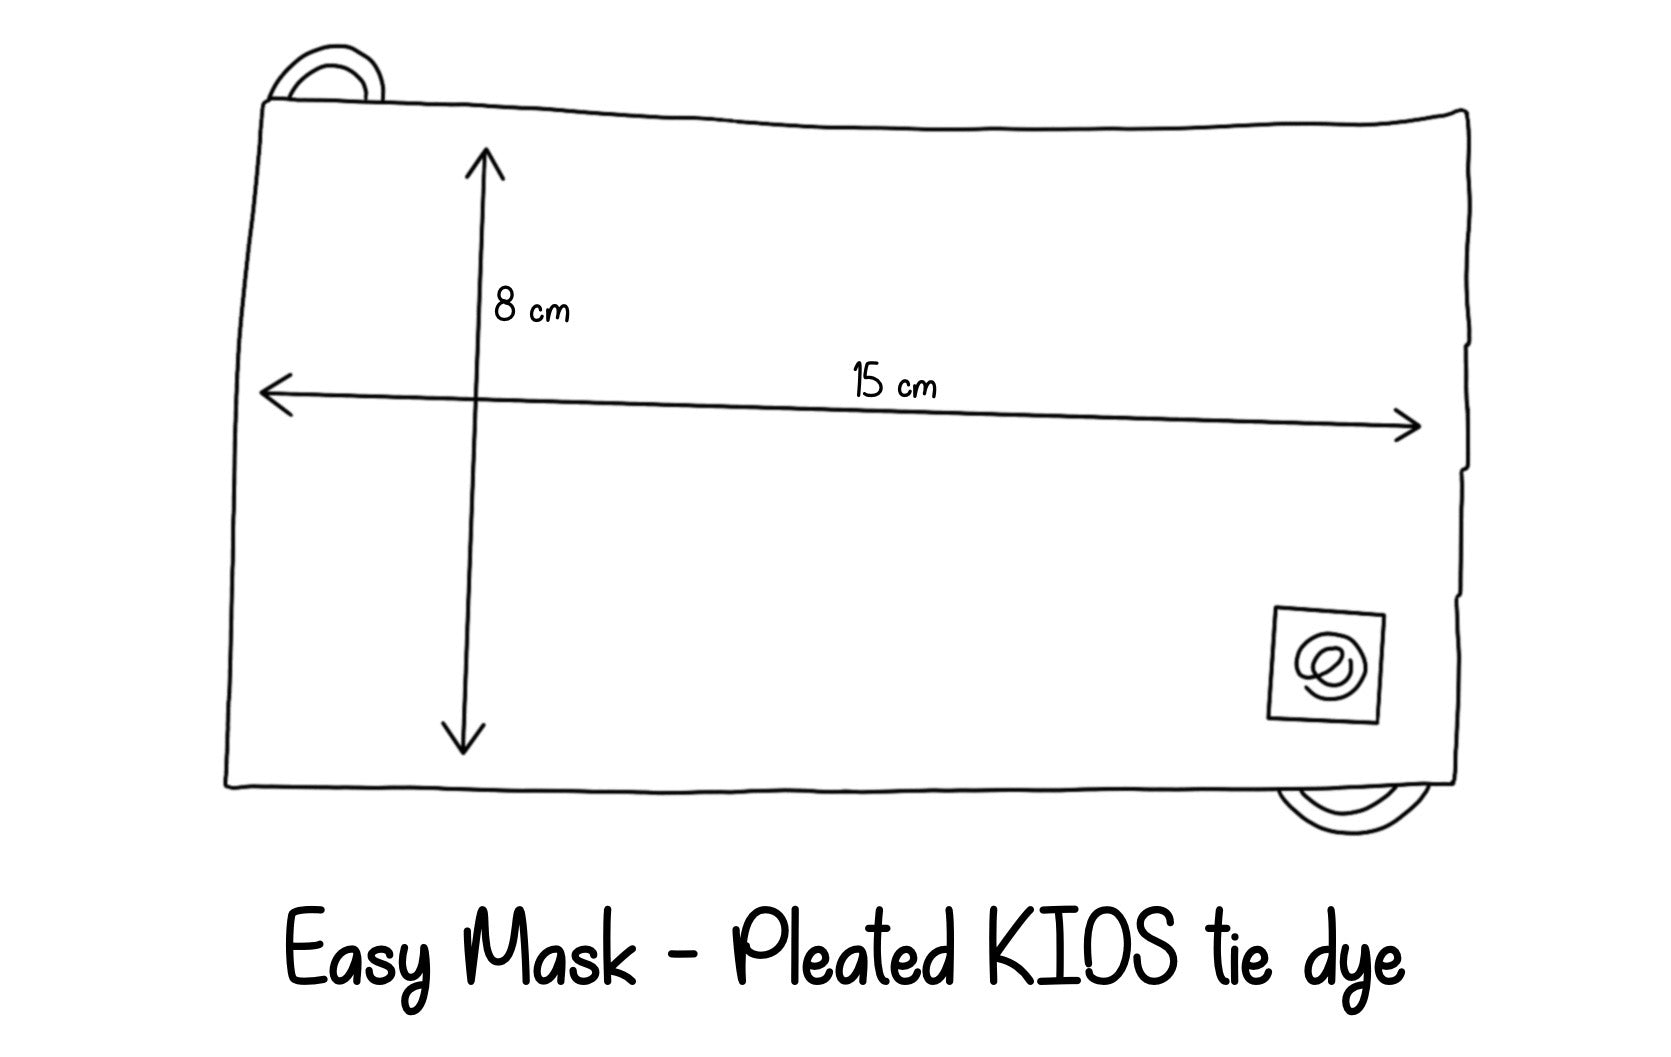 Easy Mask Pleated - Kids - Blue Tie Dye